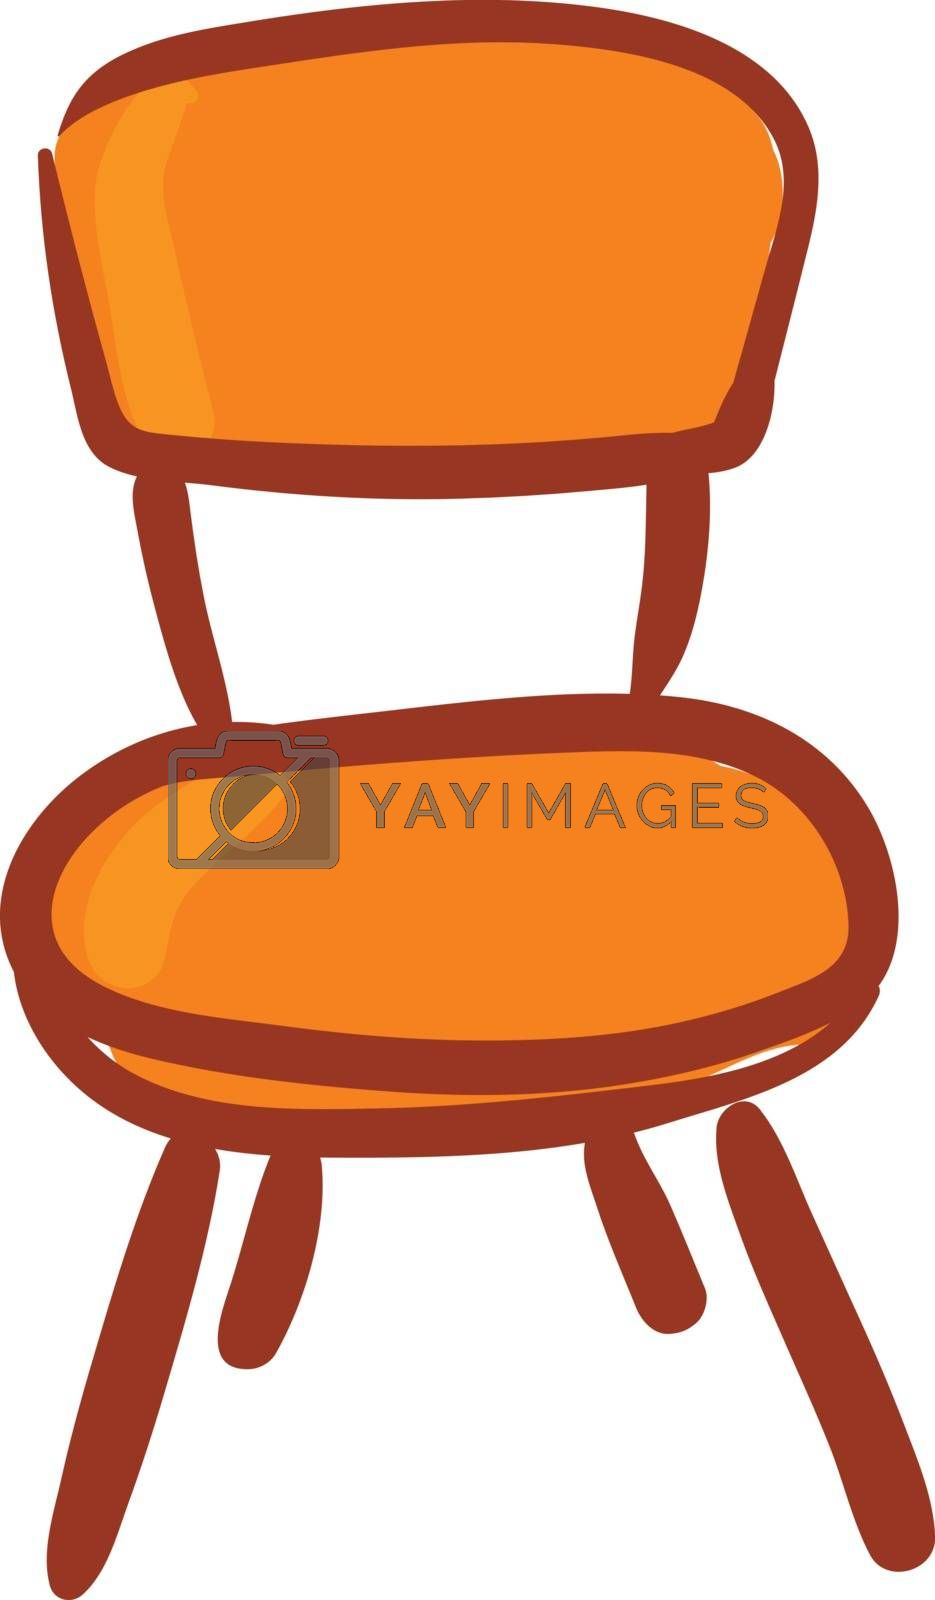 Royalty free image of Clipart of an orange-colored chair vector or color illustration by Morphart